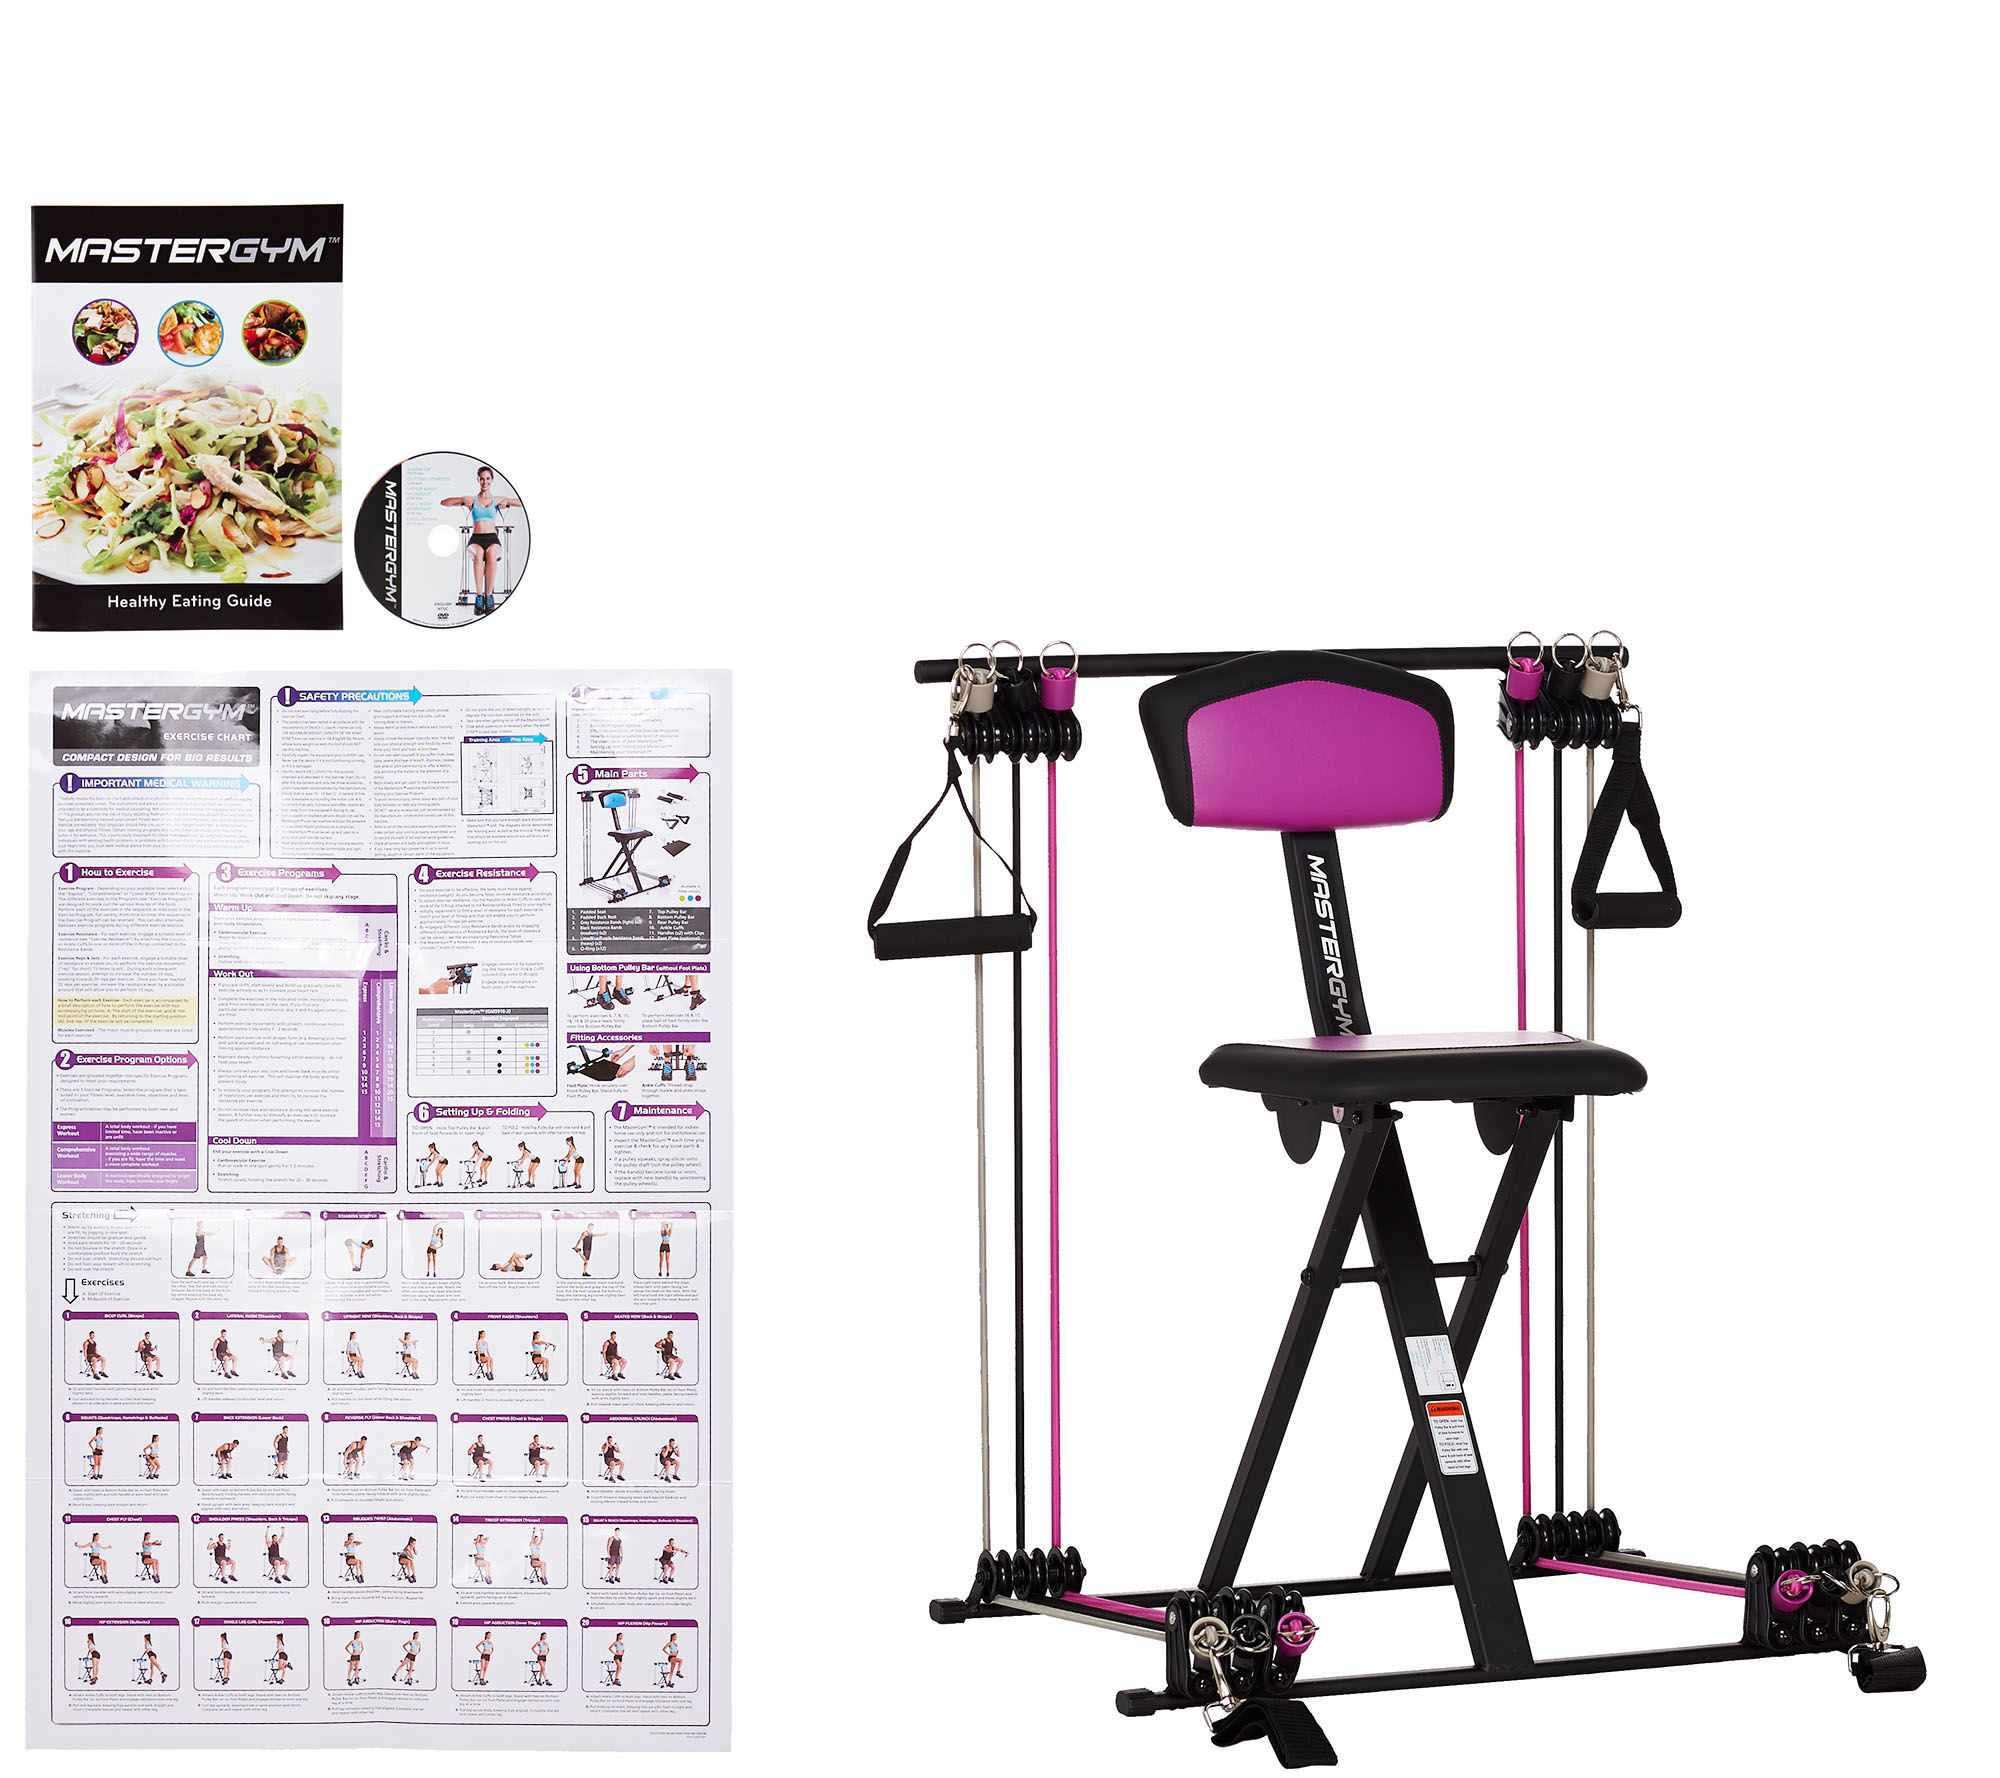 chair gym parts toddler adirondack plastic as is master compact fitness with dvd wall chart qvc com